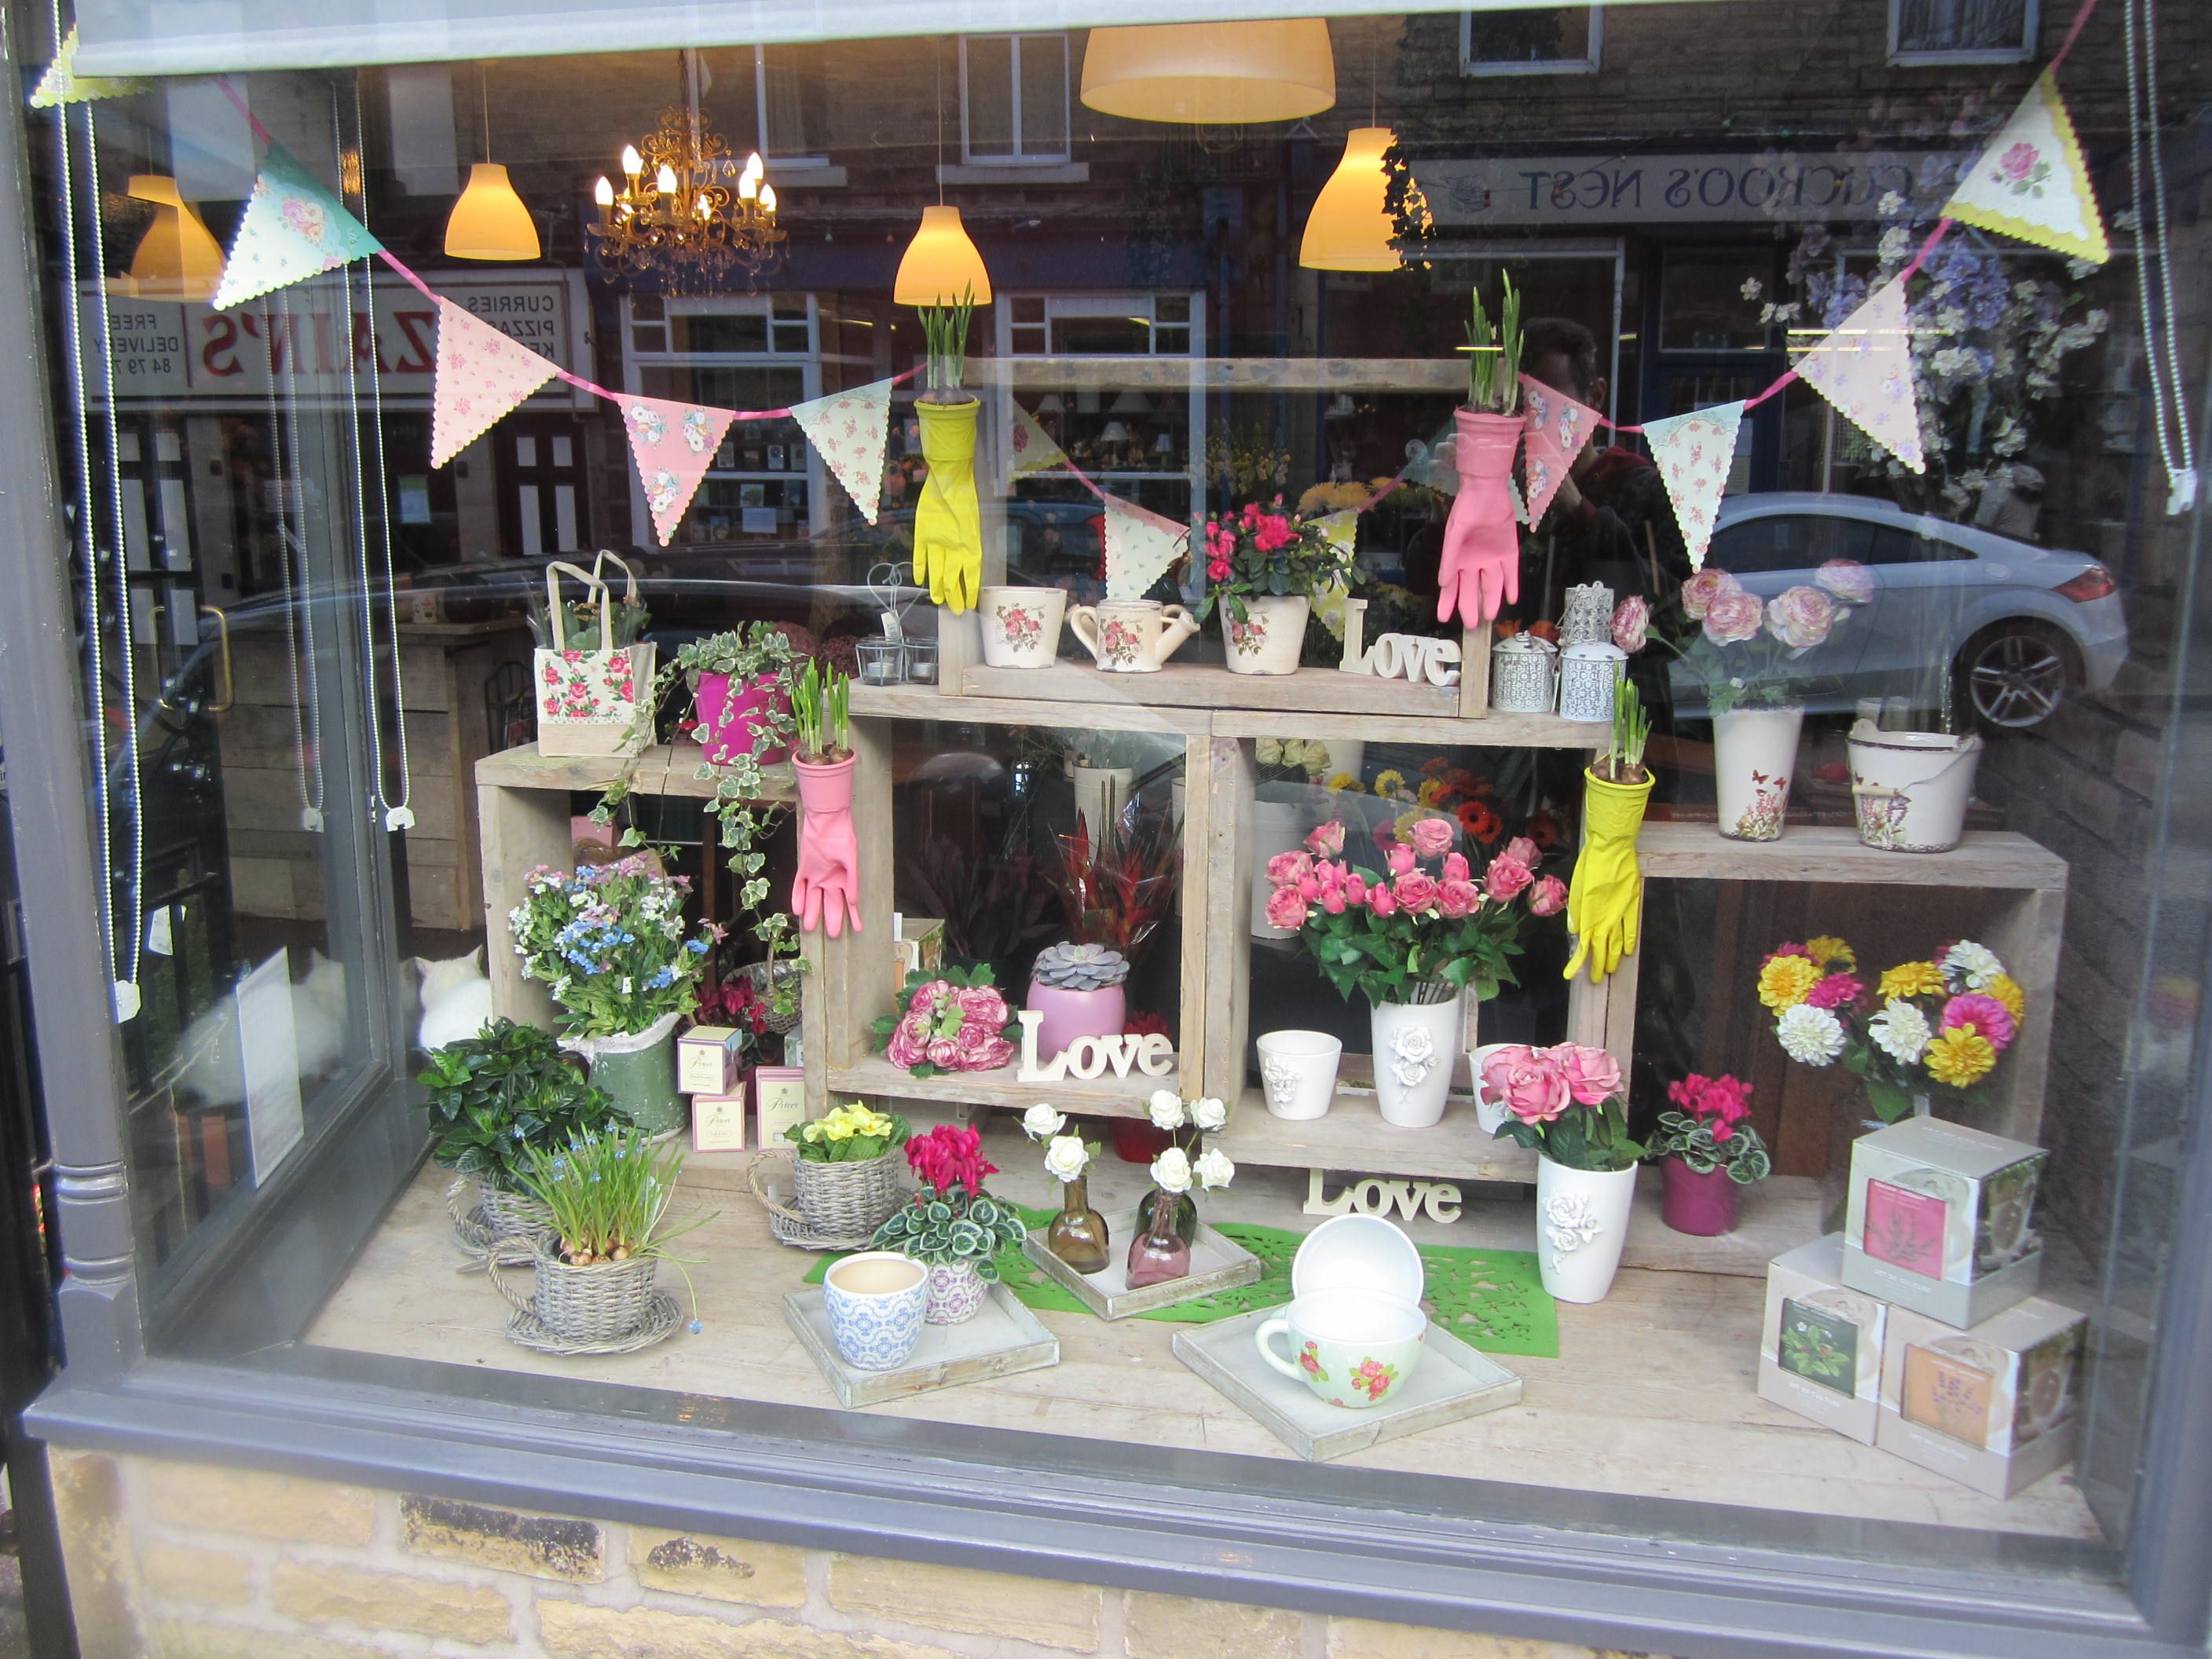 Mother's Day/Spring 2014 Window display